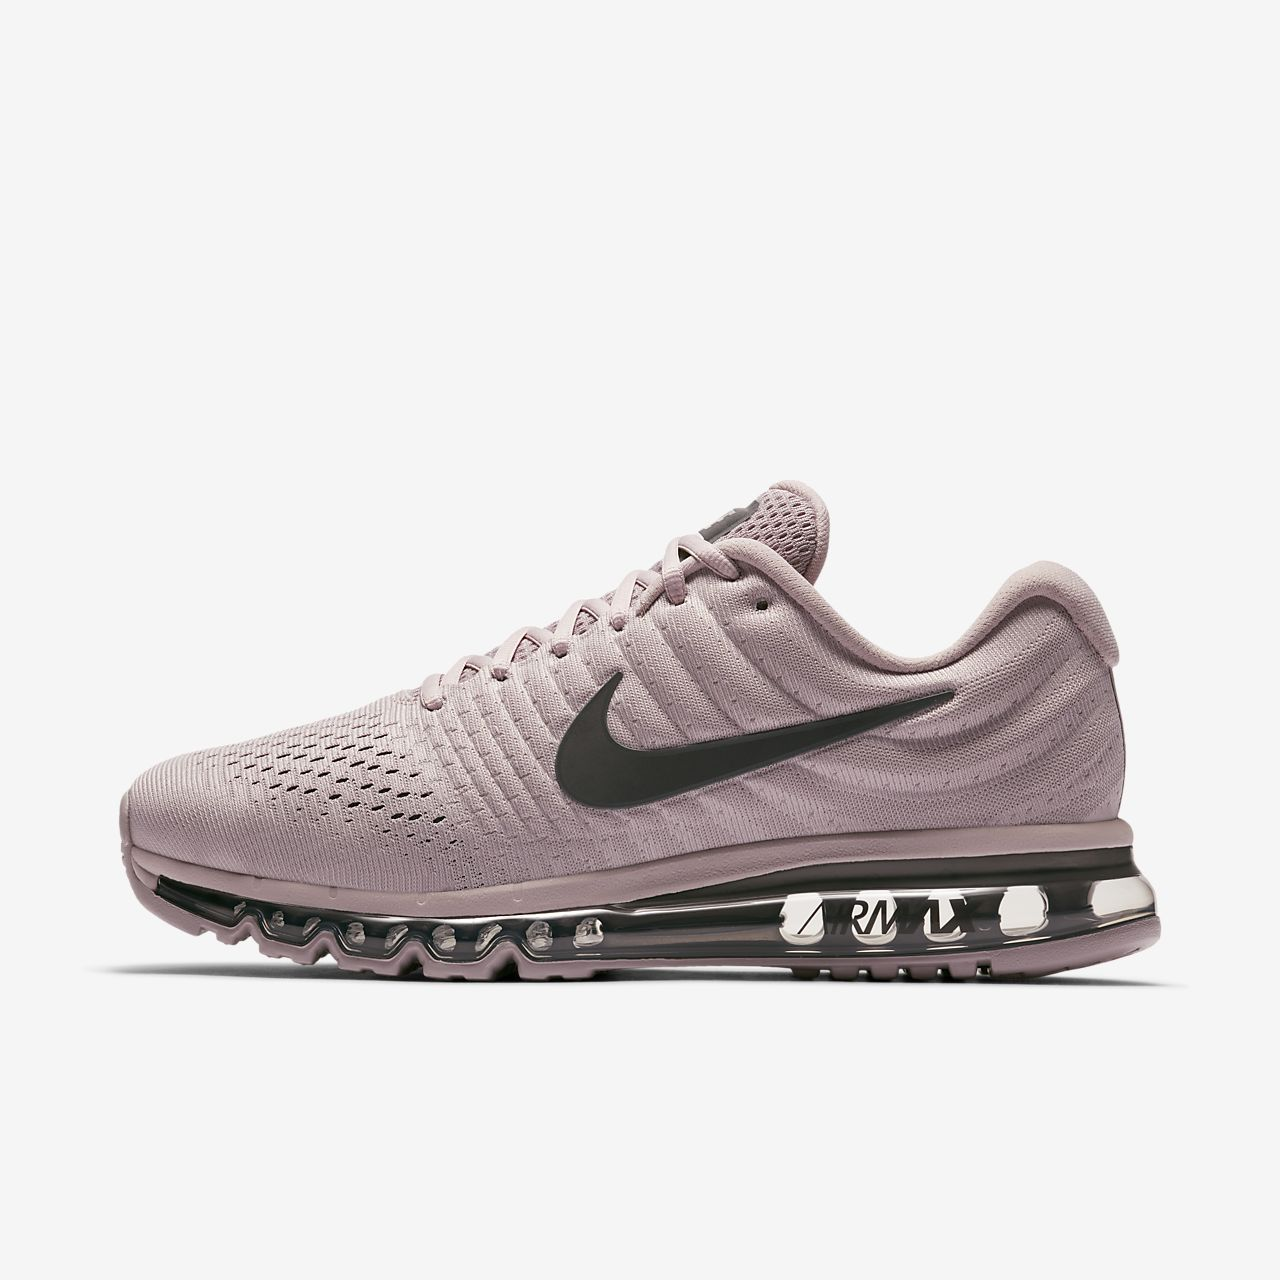 30ed03301882 Nike Air Max 2017 SE Men s Shoe. Nike.com GB